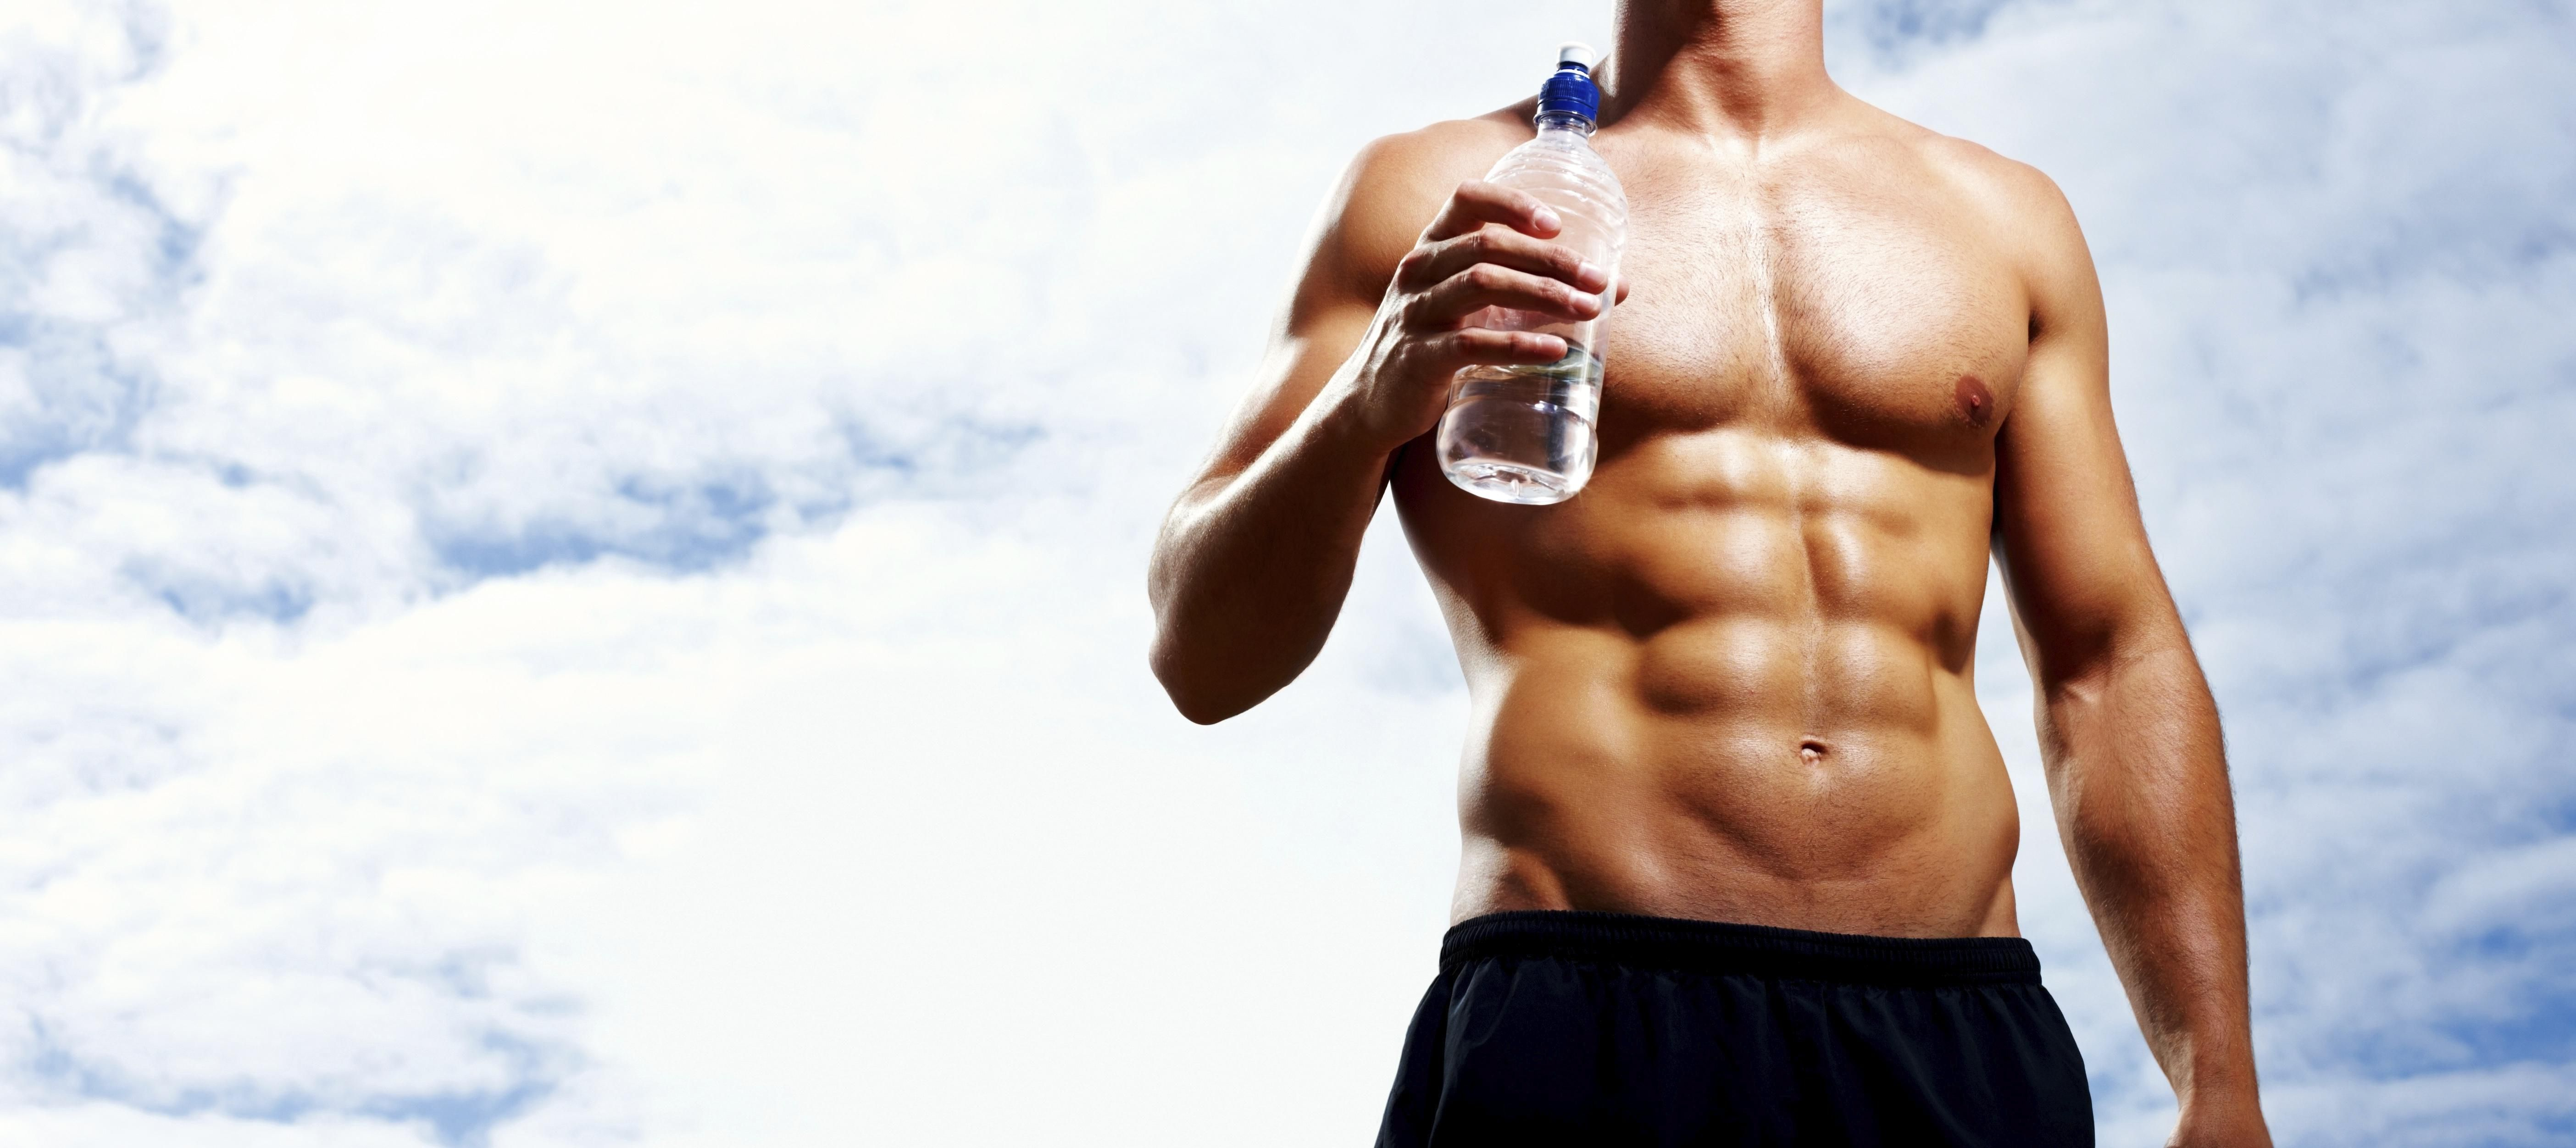 Mid section of muscular man with bottle aganist cloudy sky